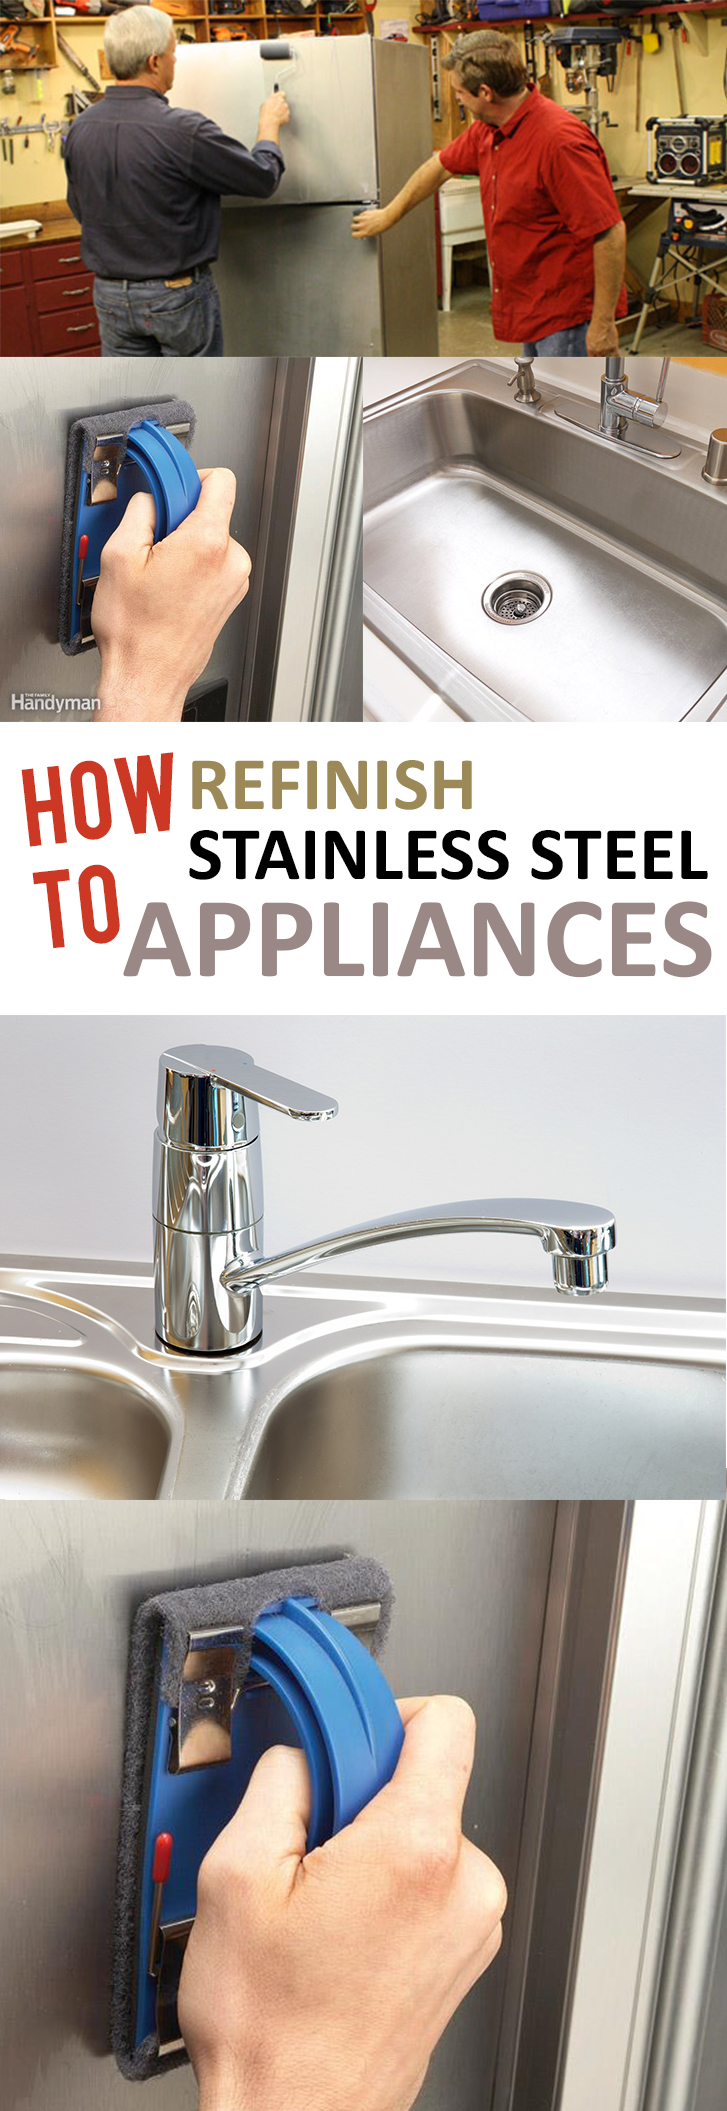 to refinish stainless steel appliances